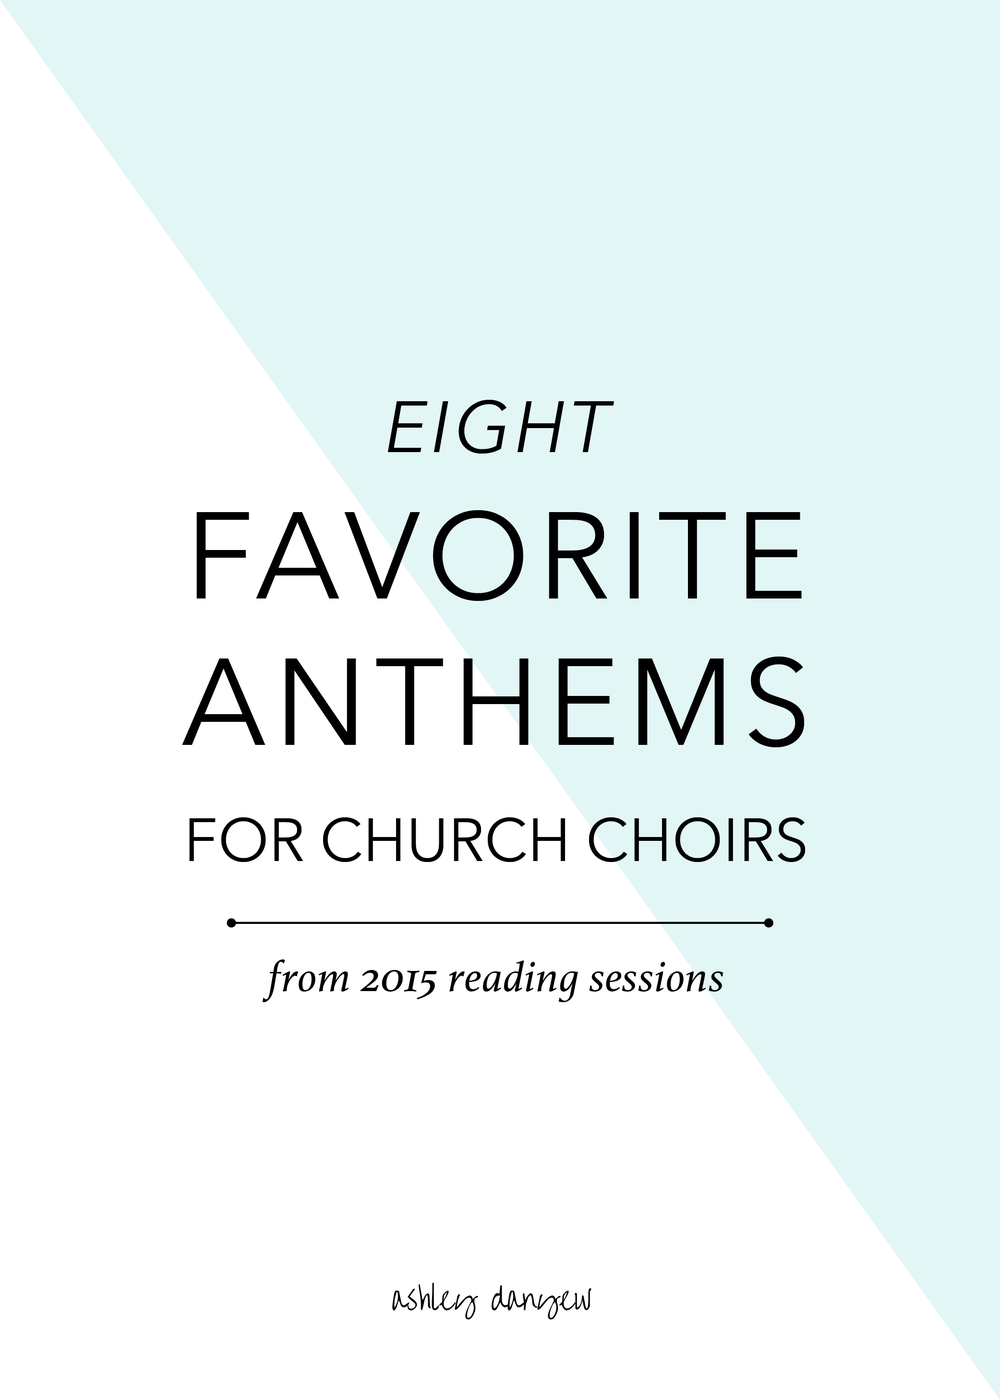 Eight Favorite Anthems for Church Choirs-01.png